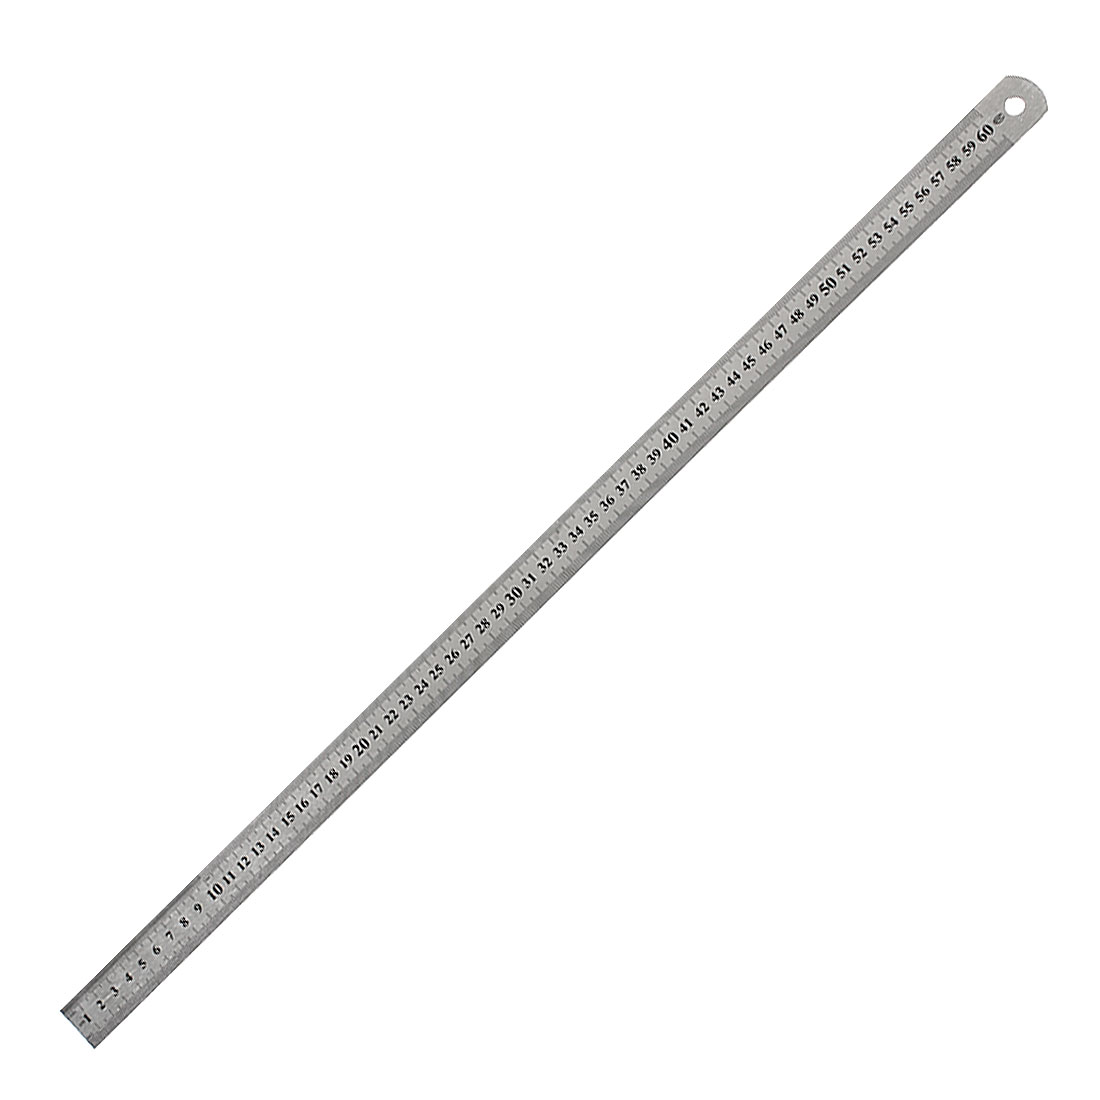 "Stainless Steel Black Painted 60cm 23.6"" Measuring Tool Long Straight Ruler"